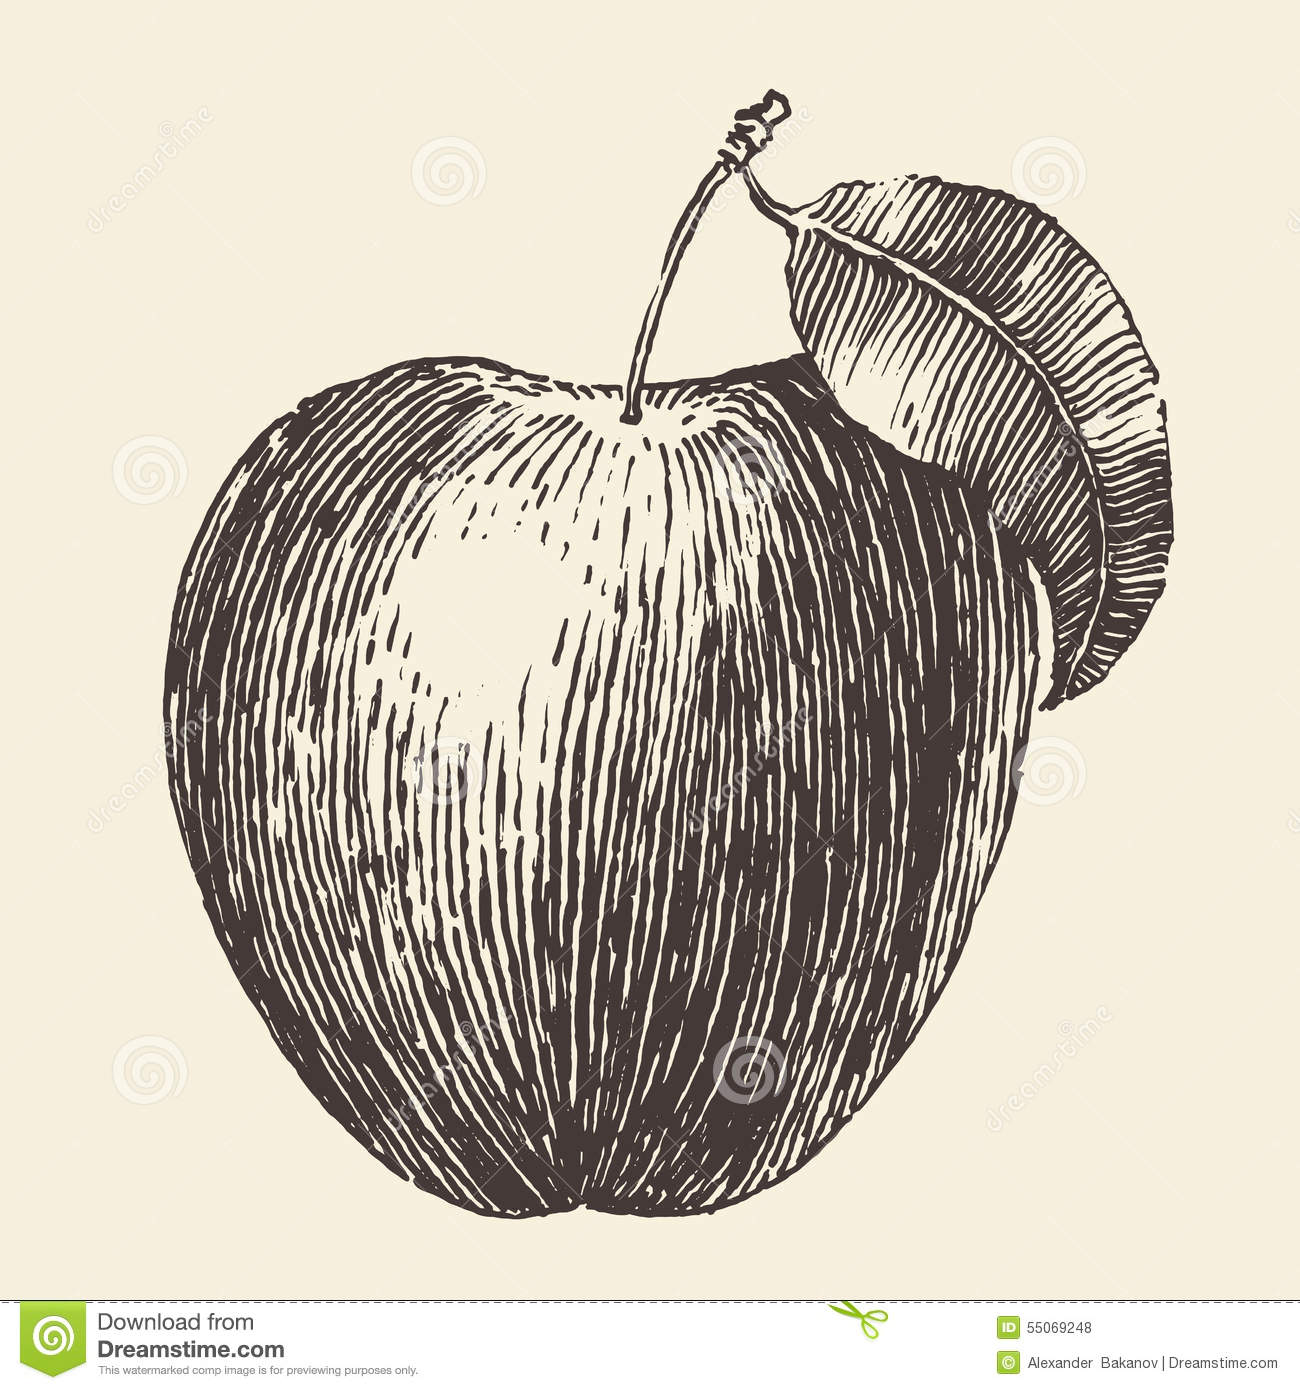 Vintage Illustration Apple Stock Photos and Images - alamy.com